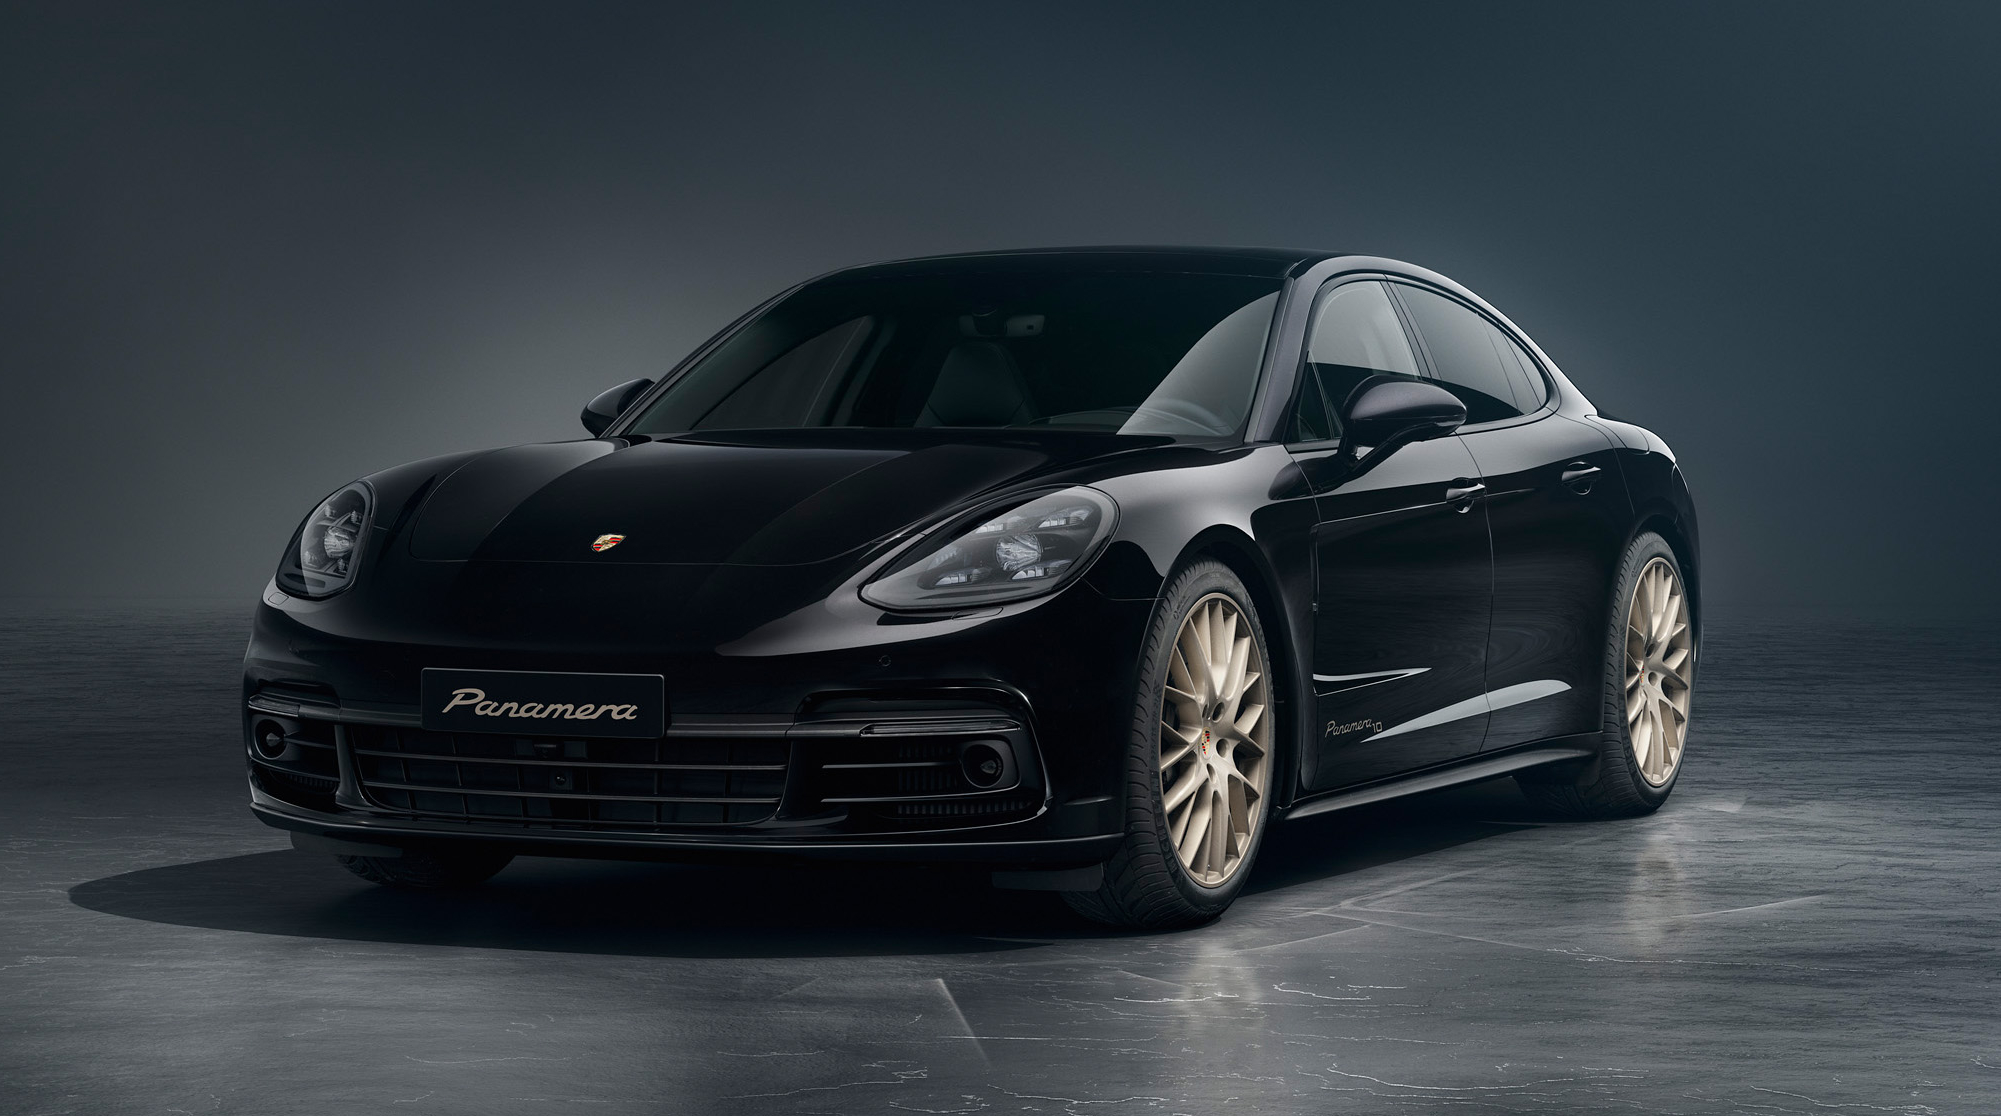 2020 Porsche Panamera 10 Years Edition Pictures, Photos